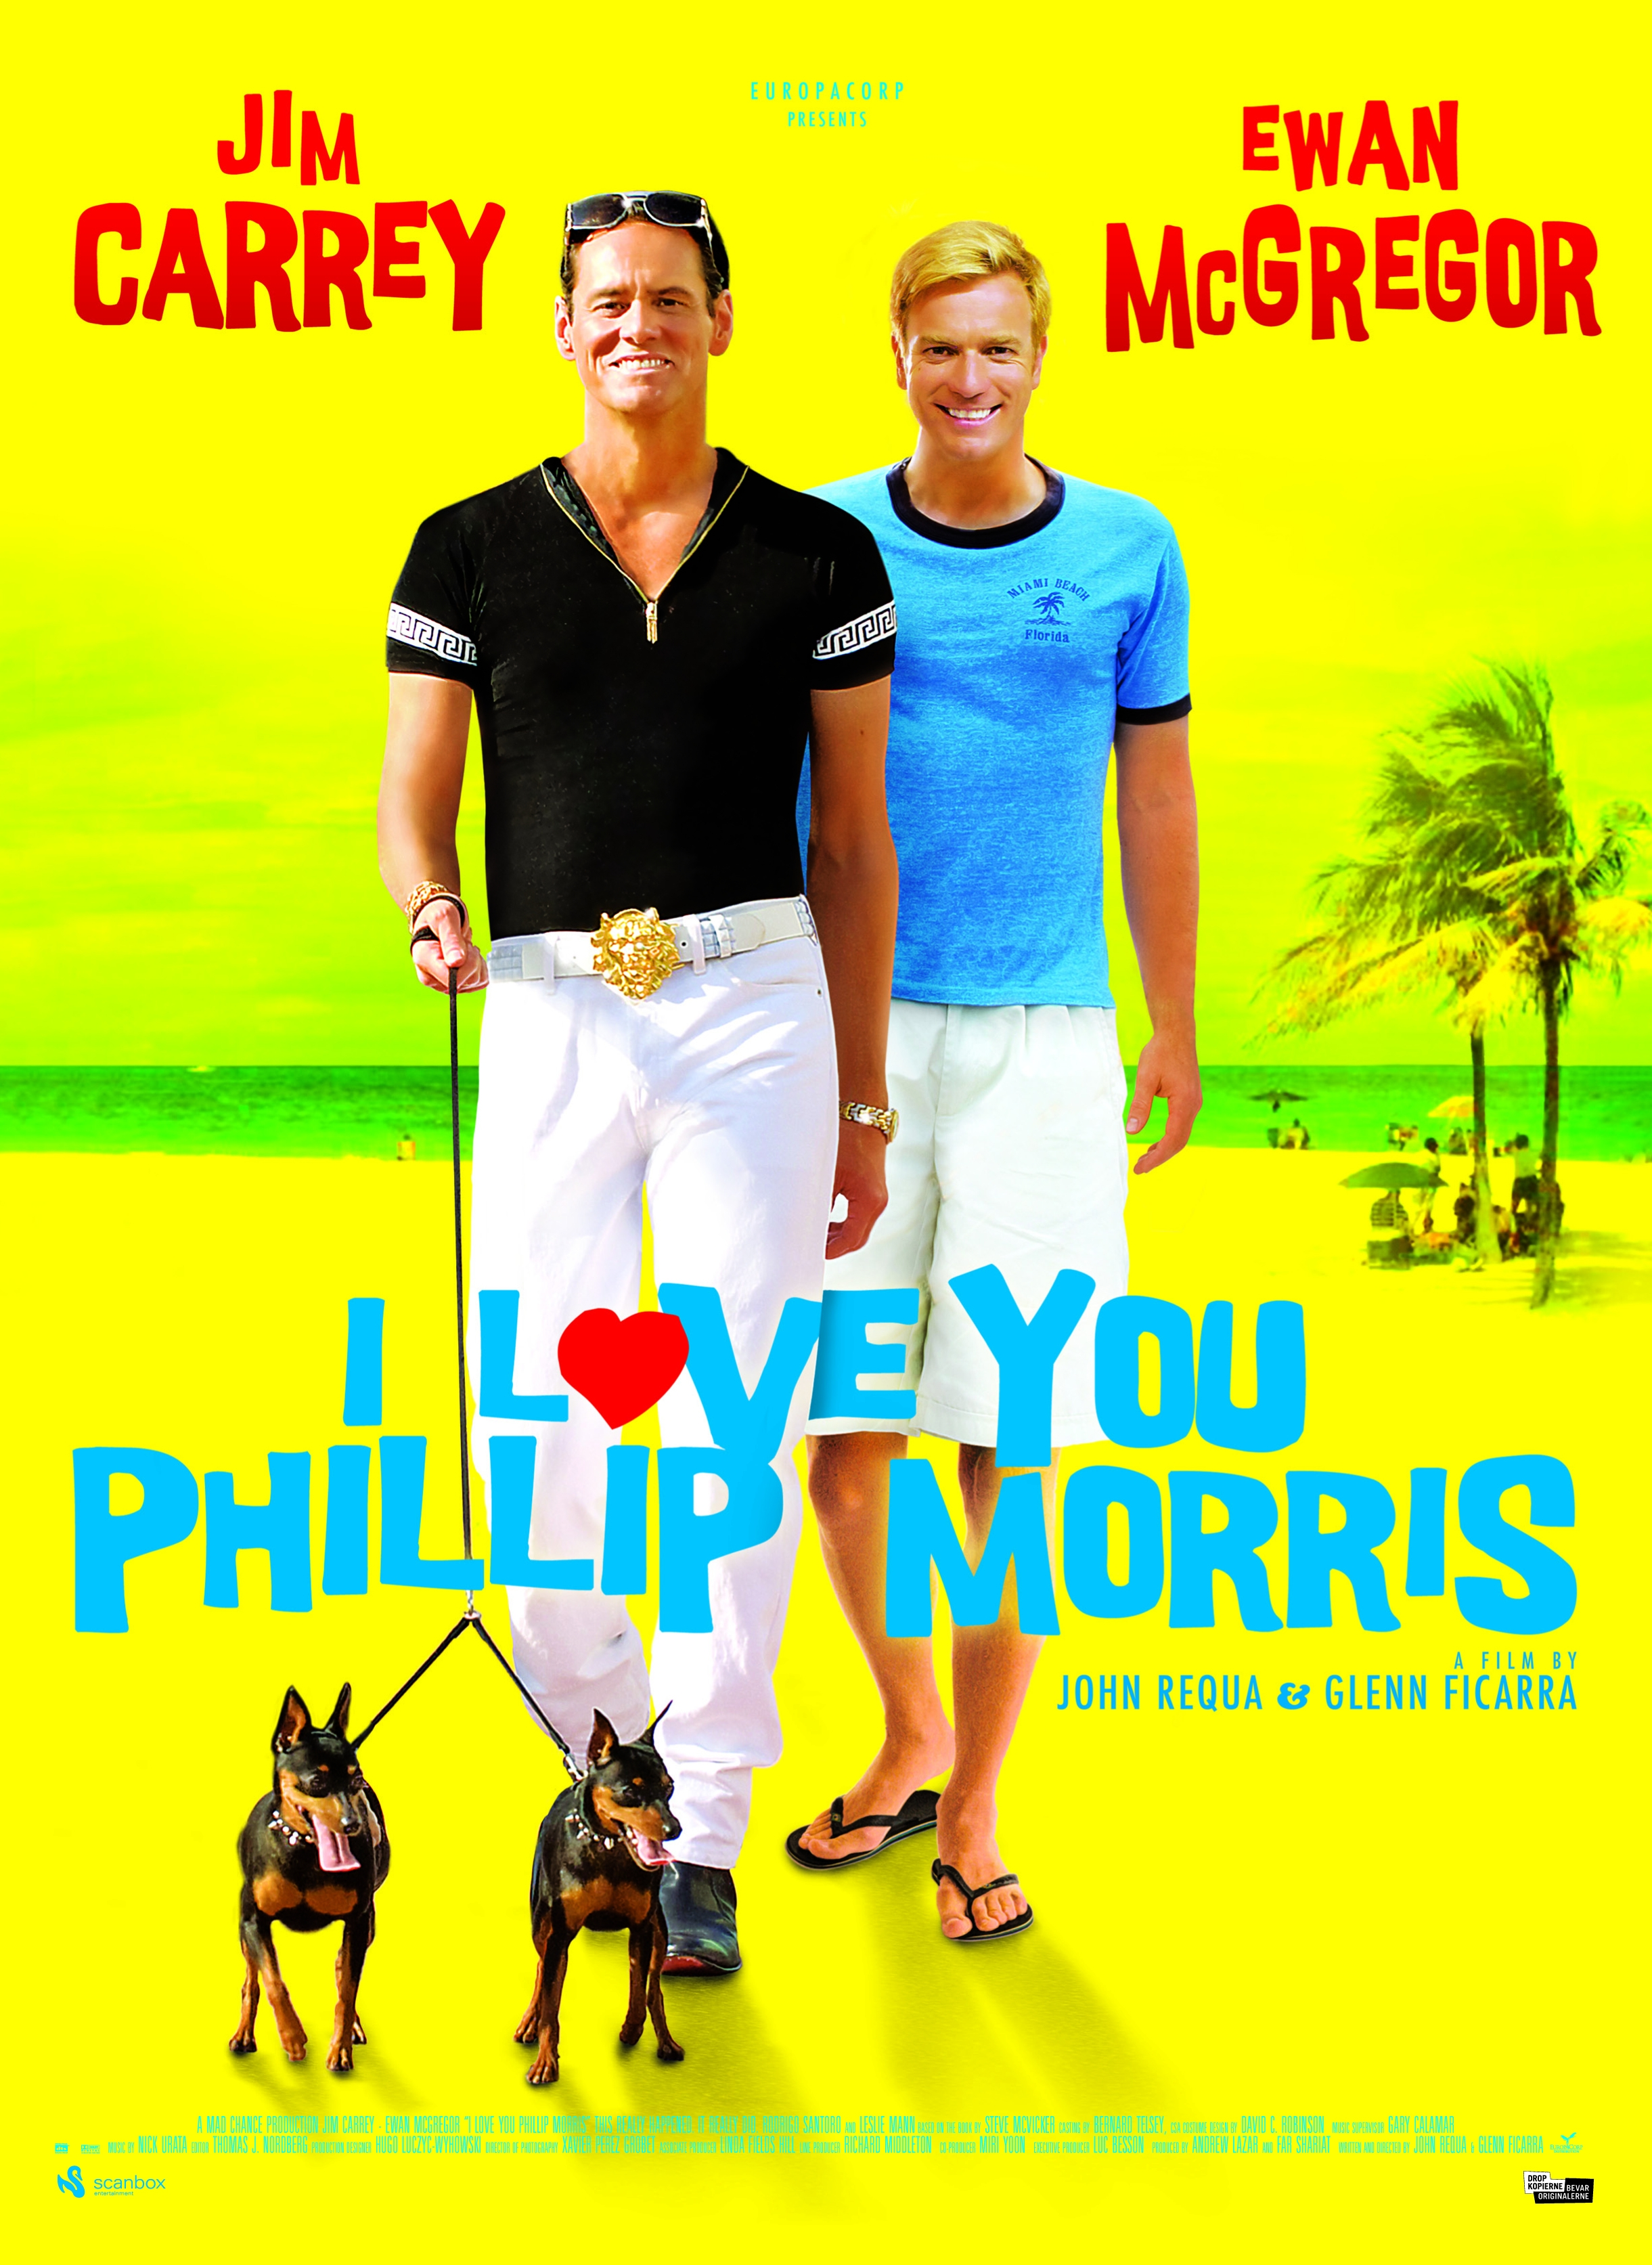 phillip morris Philip morris international inc (pm) is a global cigarette and tobacco company the company, which sells its products in over 200 countries, offers several products including cigarettes, cigars, fine-cut rolling tobacco, snuff, rolling papers and tubes.